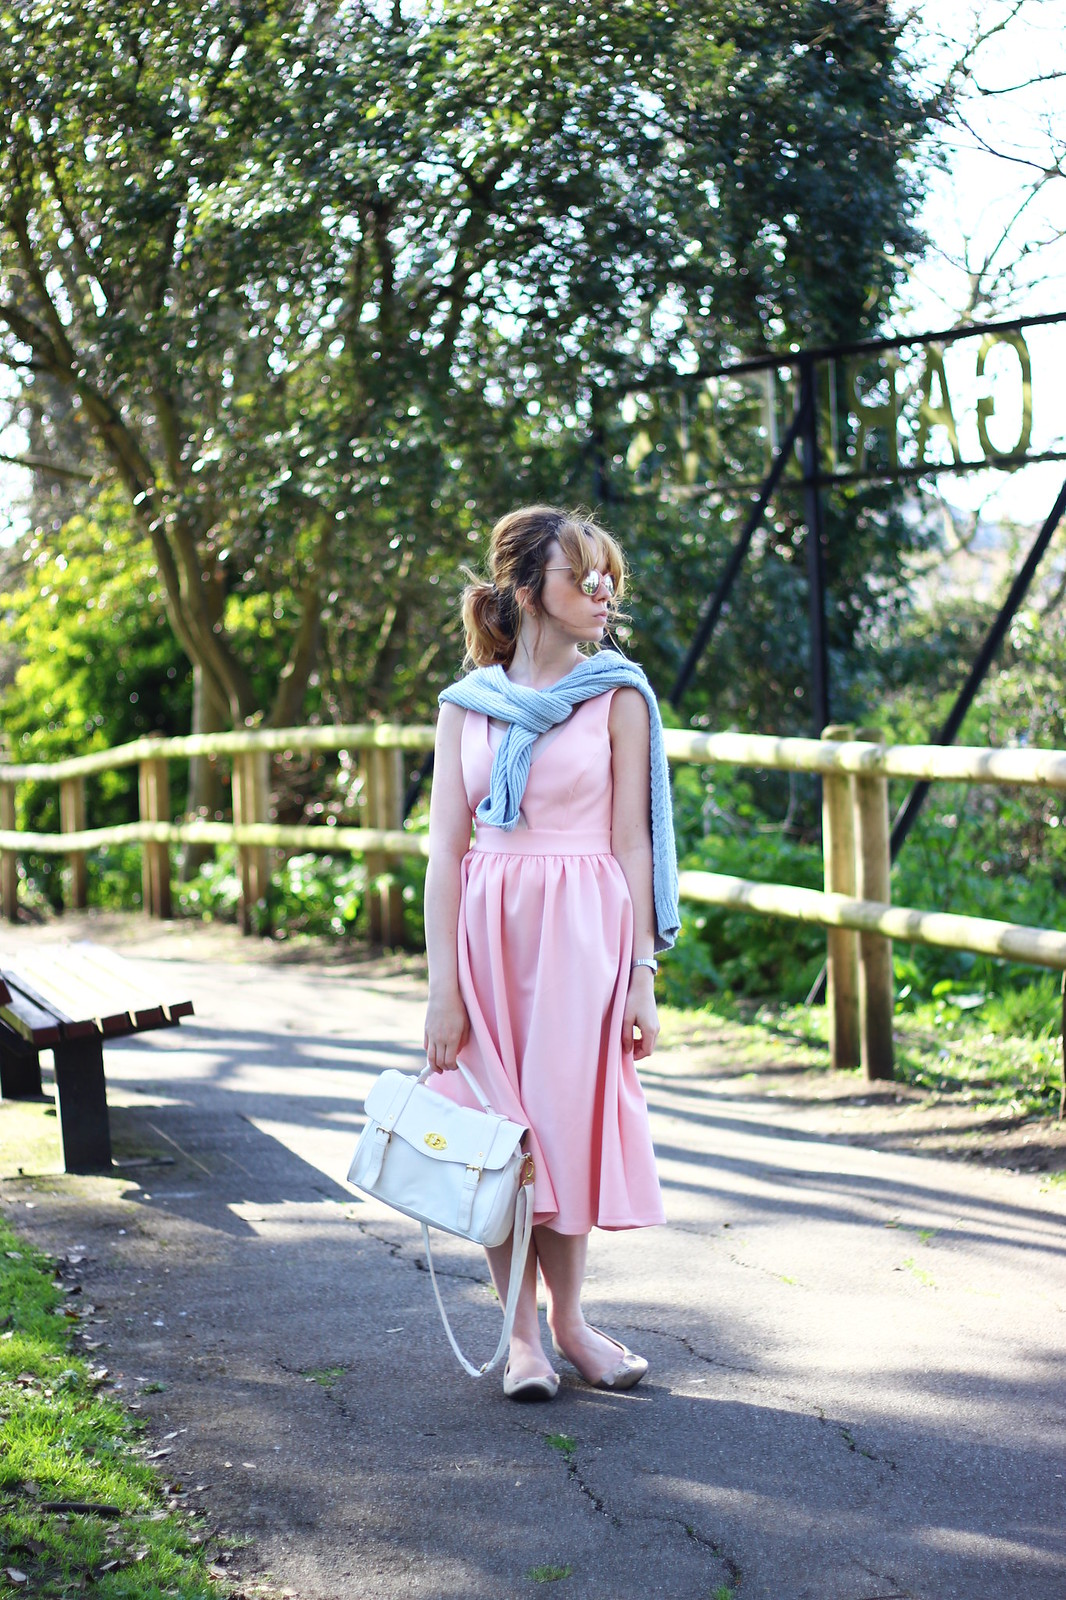 1pasteloutfit, pastel, asos, pink, blue, spring, summer, 2014, trend, fashion, style, retro, cat-eye sunglasses, knitwear, 50's, vintage, inspired, high street, personal style, stylepeaches, blog, outfit, look